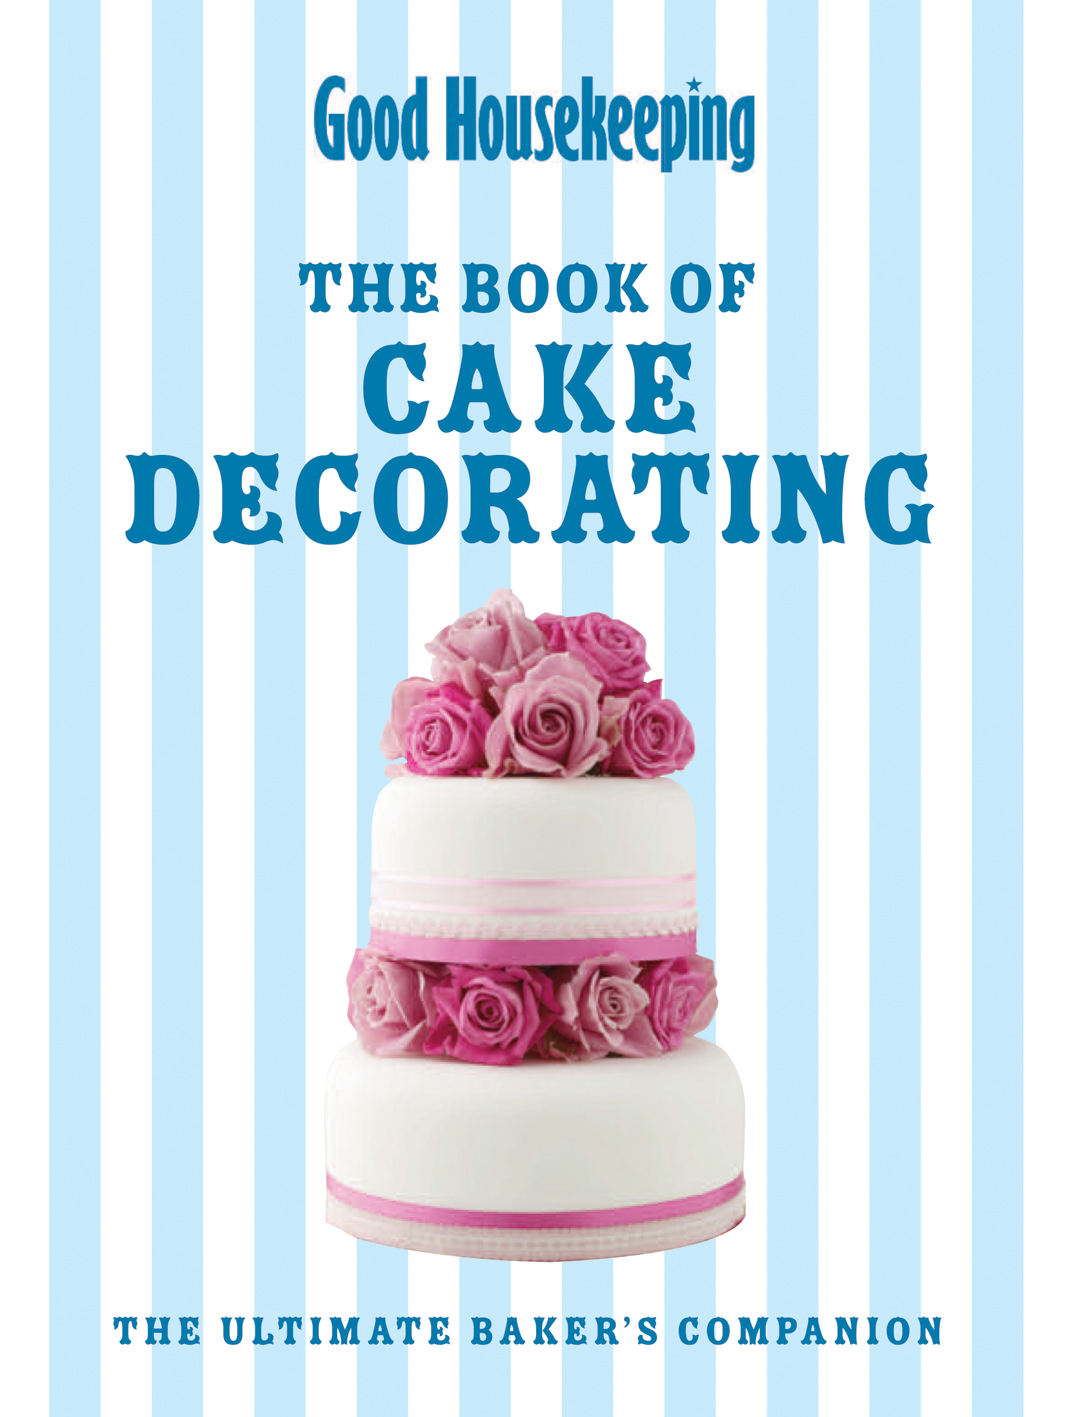 Good Housekeeping The Cake Decorating Book